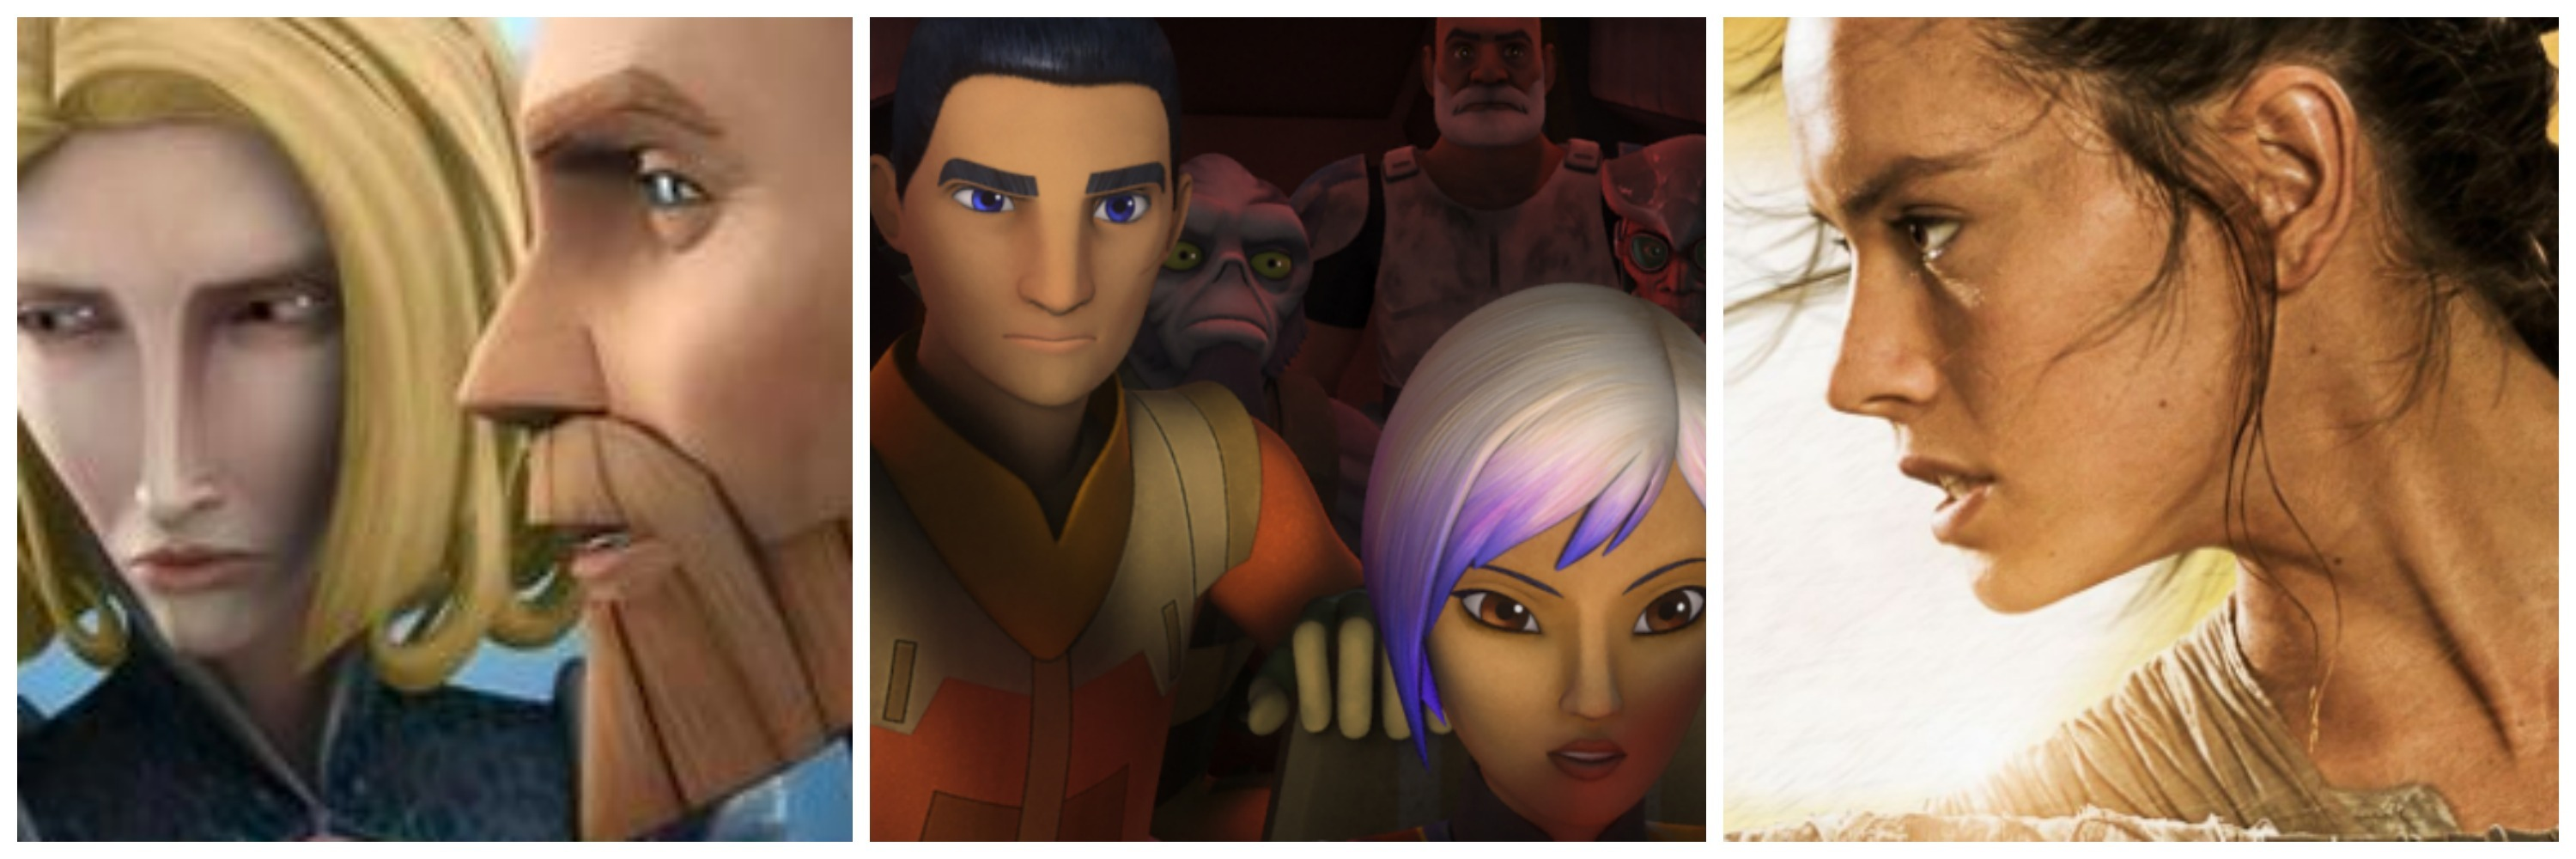 LEFT: Satine and Obi-Wan. CENTER: Ezra and Sabine. RIGHT: Rey